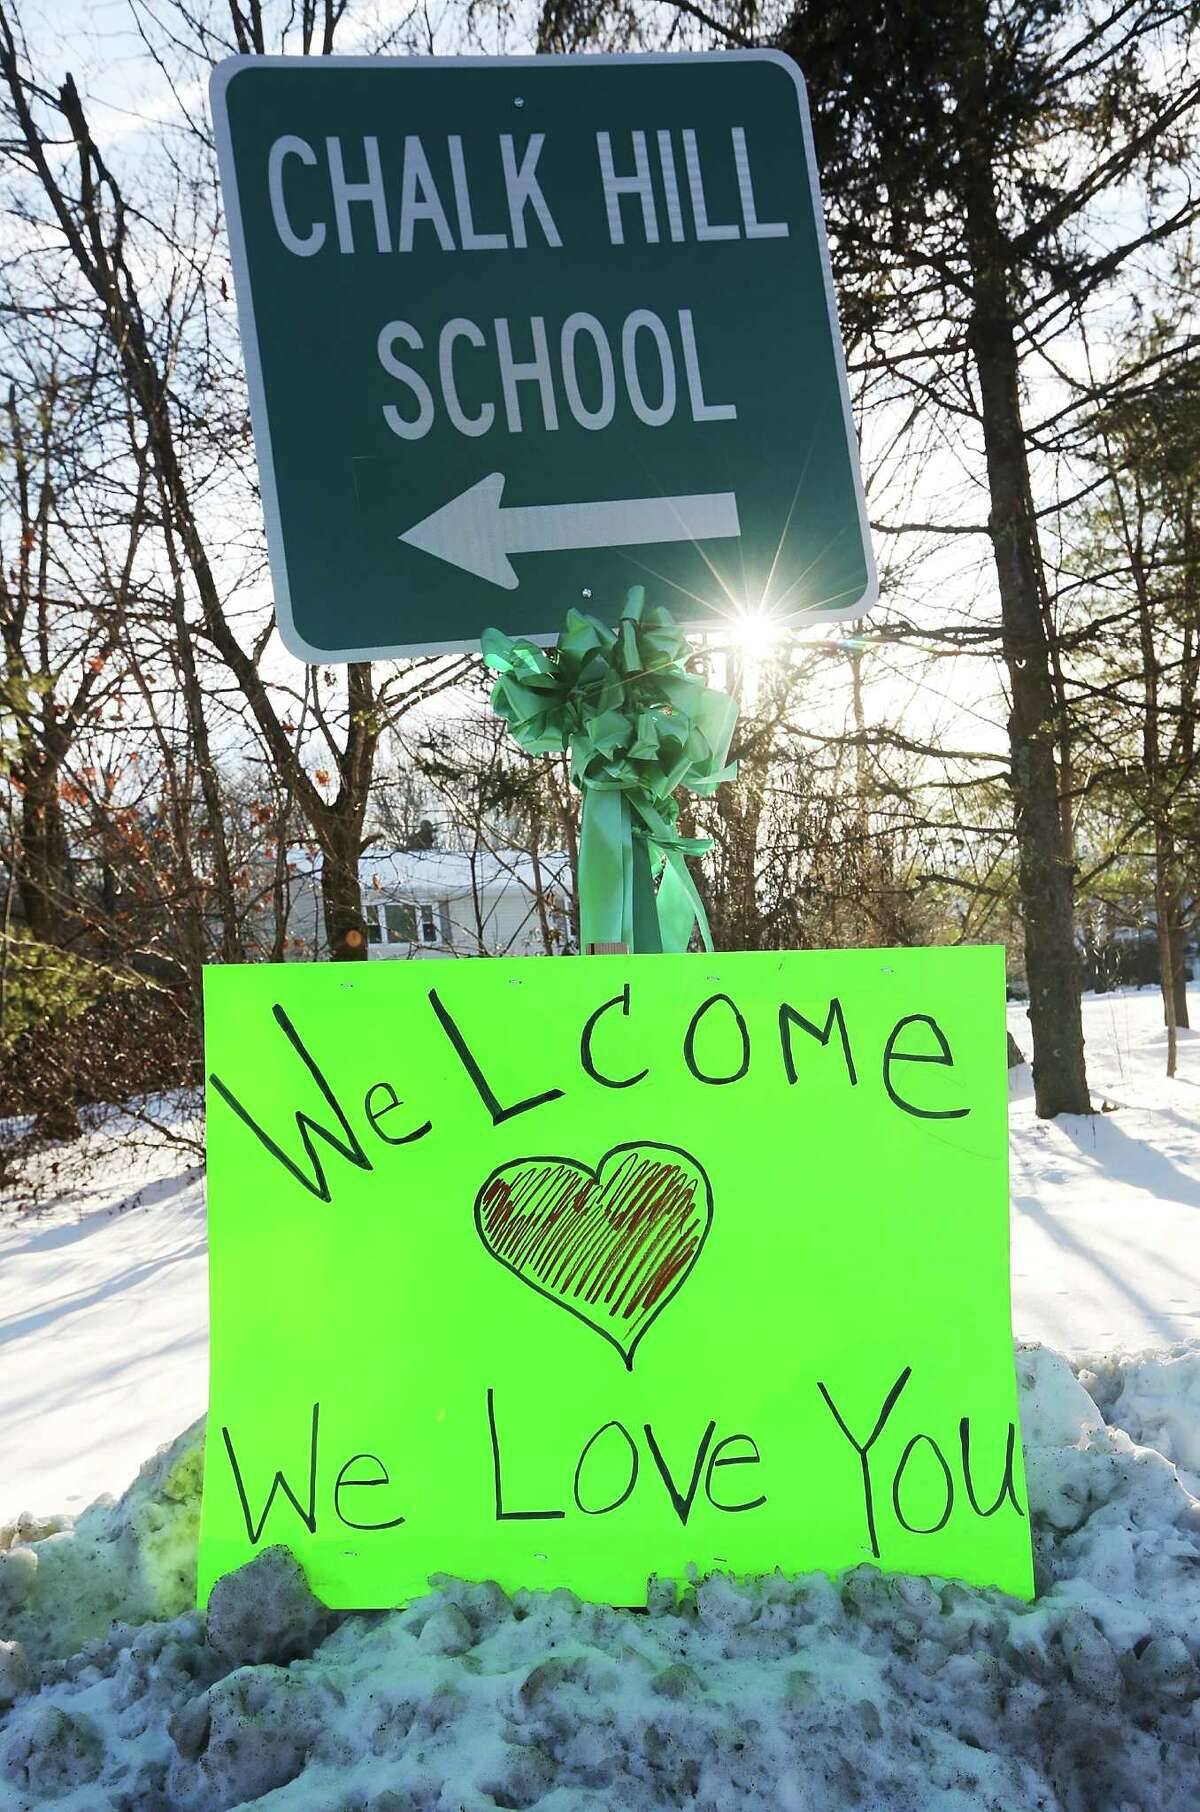 MONROE, CT - JANUARY 03: A sign reads 'Welcome We Love You' beneath a sign pointing to the location of Chalk Hill School, which has been refurbished and renamed Sandy Hook Elementary School on January 3, 2013 in Monroe, Connecticut. Sandy Hook students started their first day of classes in the new building following the mass shooting at the old school in Newtown that left 20 students and six faculty members dead.